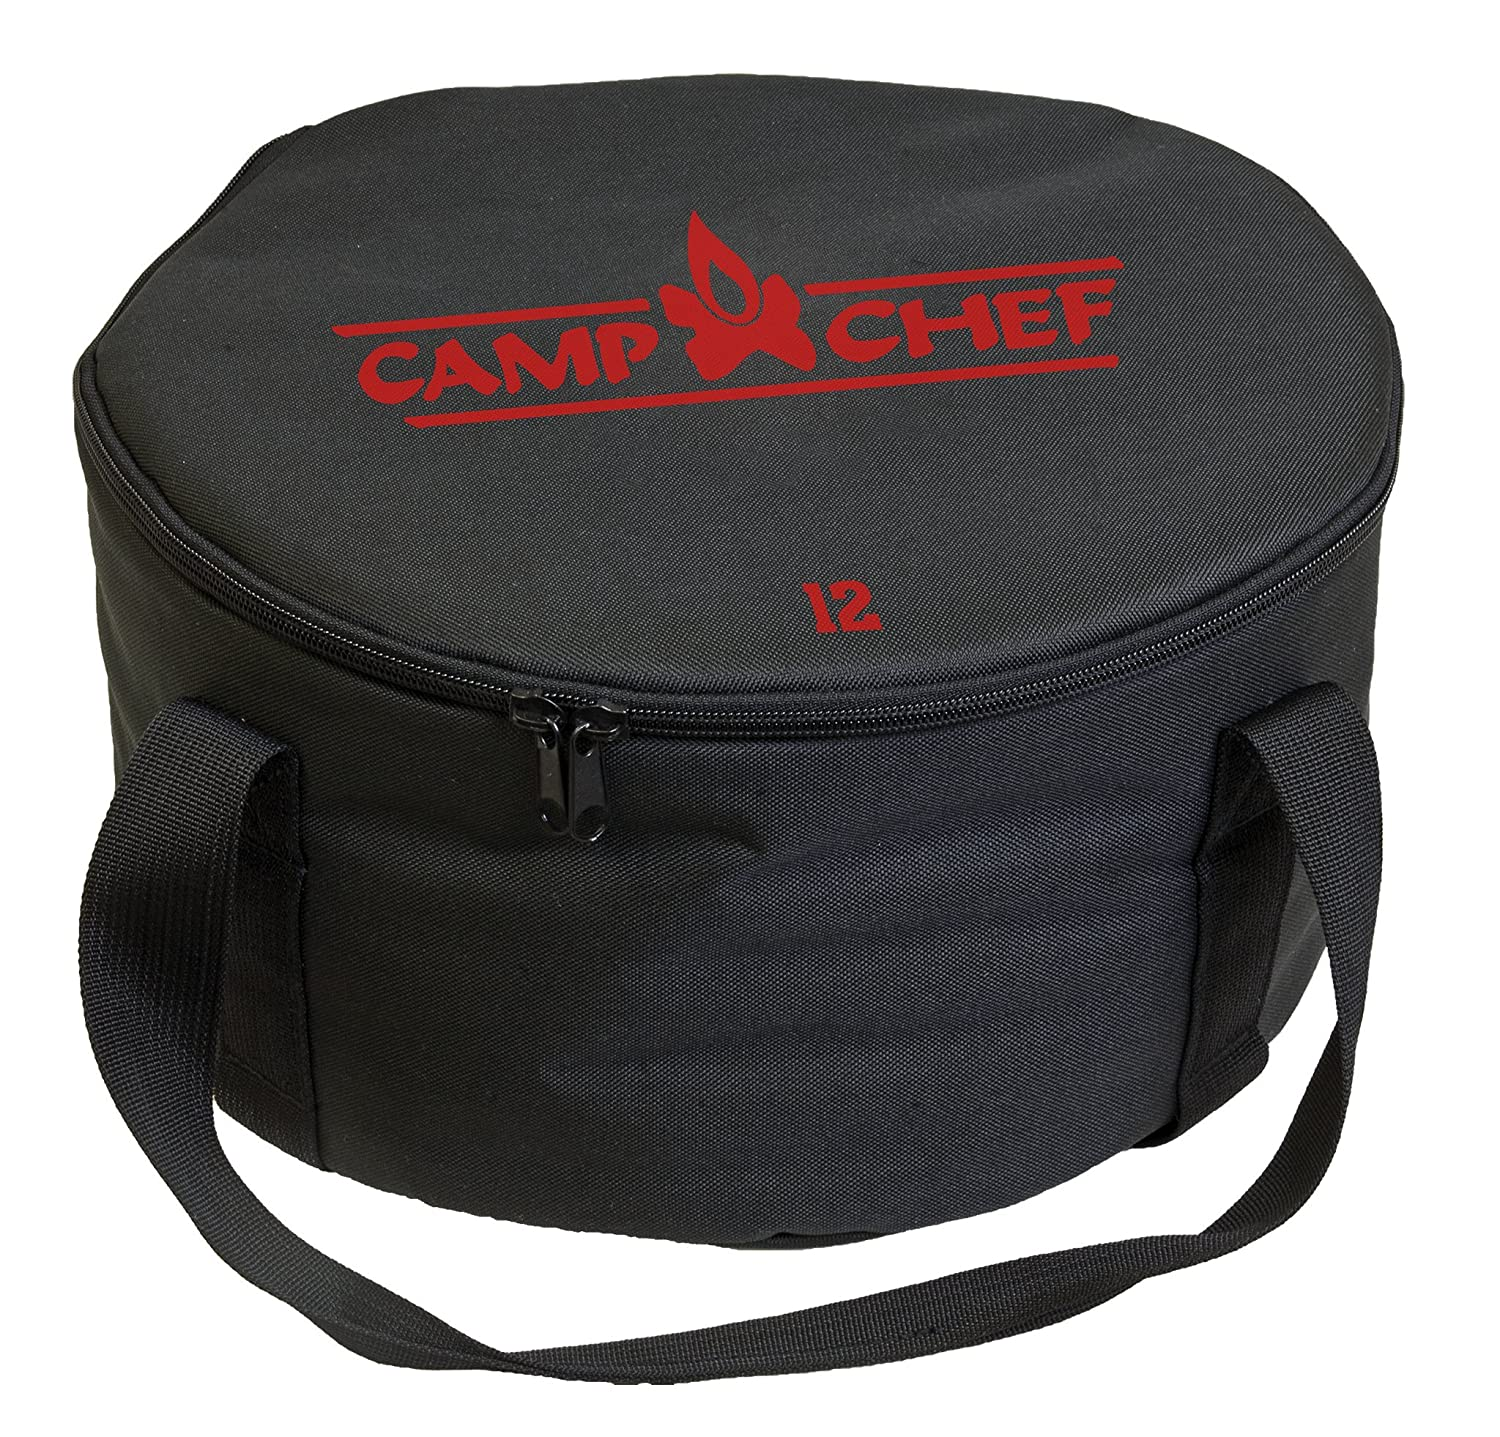 Camp Chef Carry Bag 12-Inch Dutch Oven CBDO12